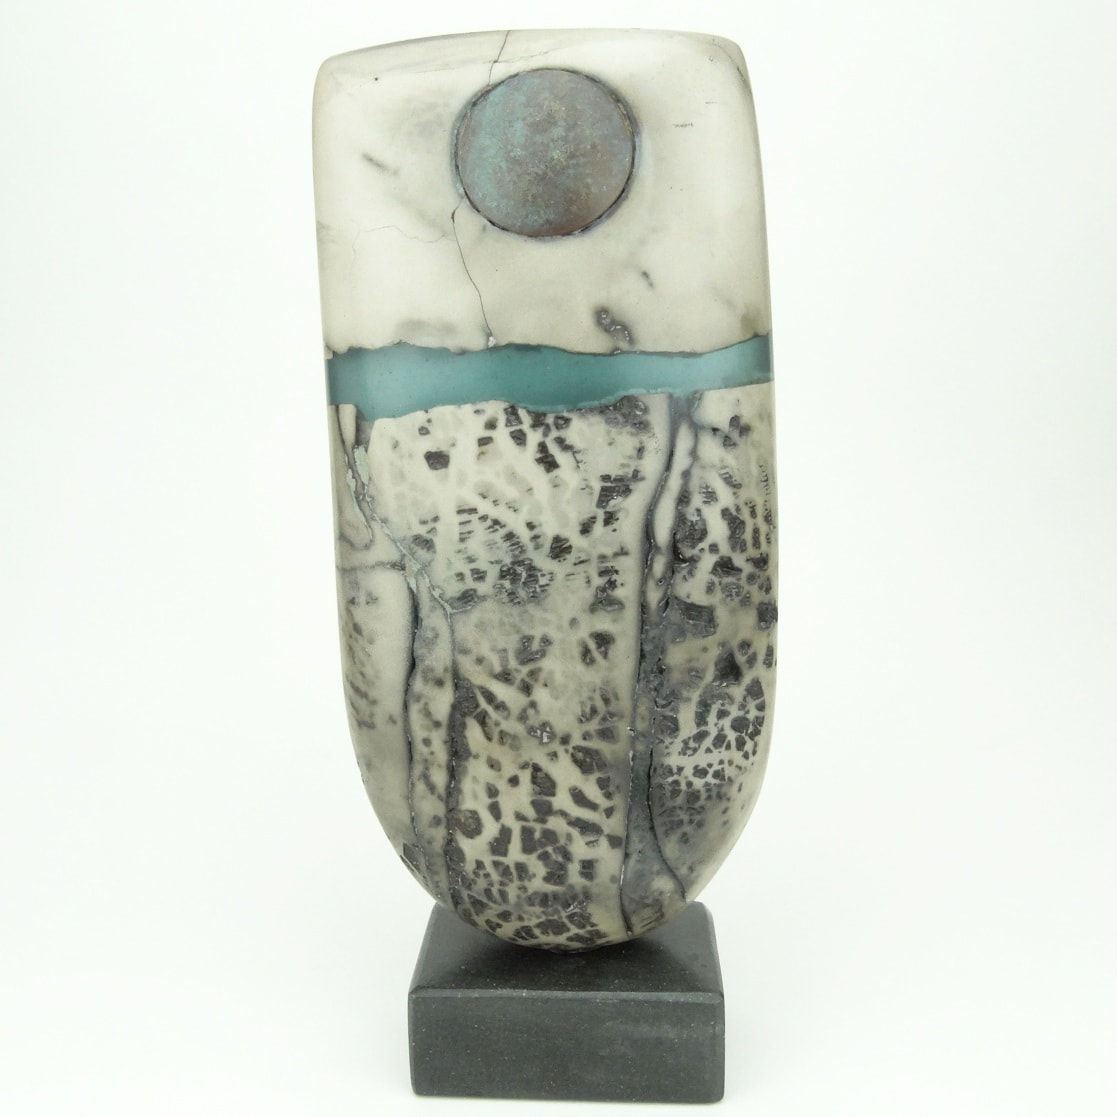 Peter Hayes ceramics